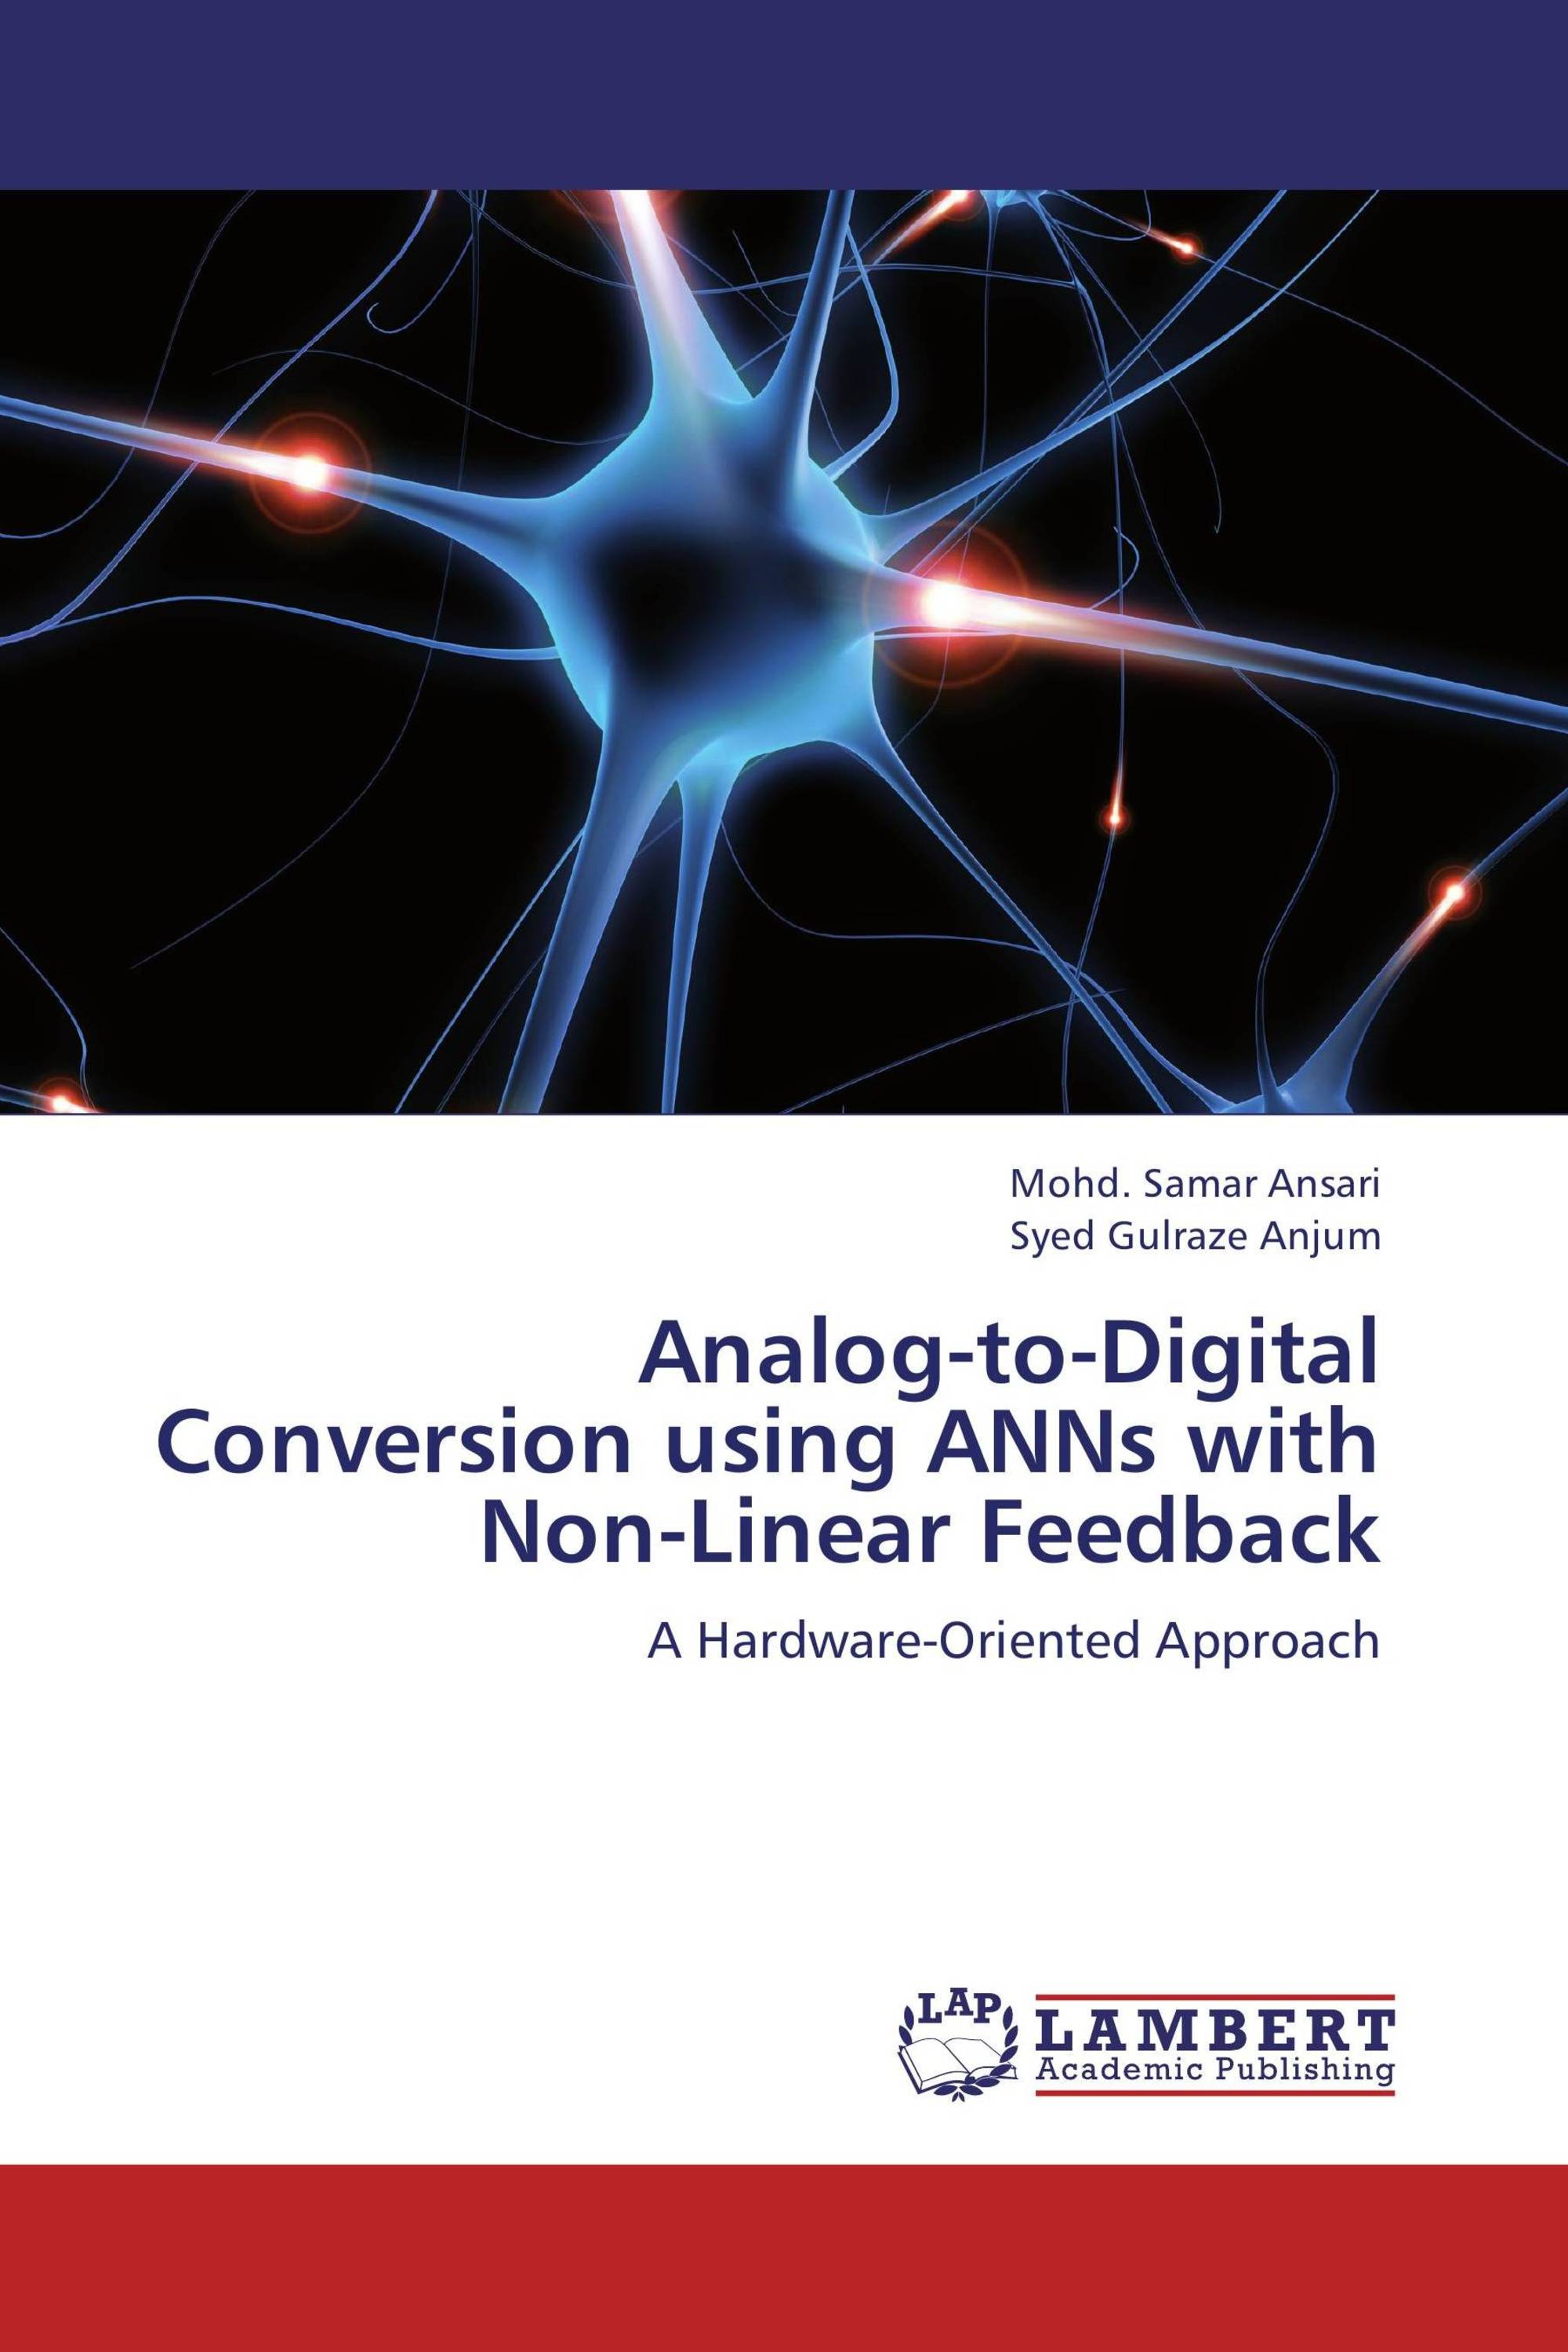 Analog-to-Digital Conversion using ANNs with Non-Linear Feedback